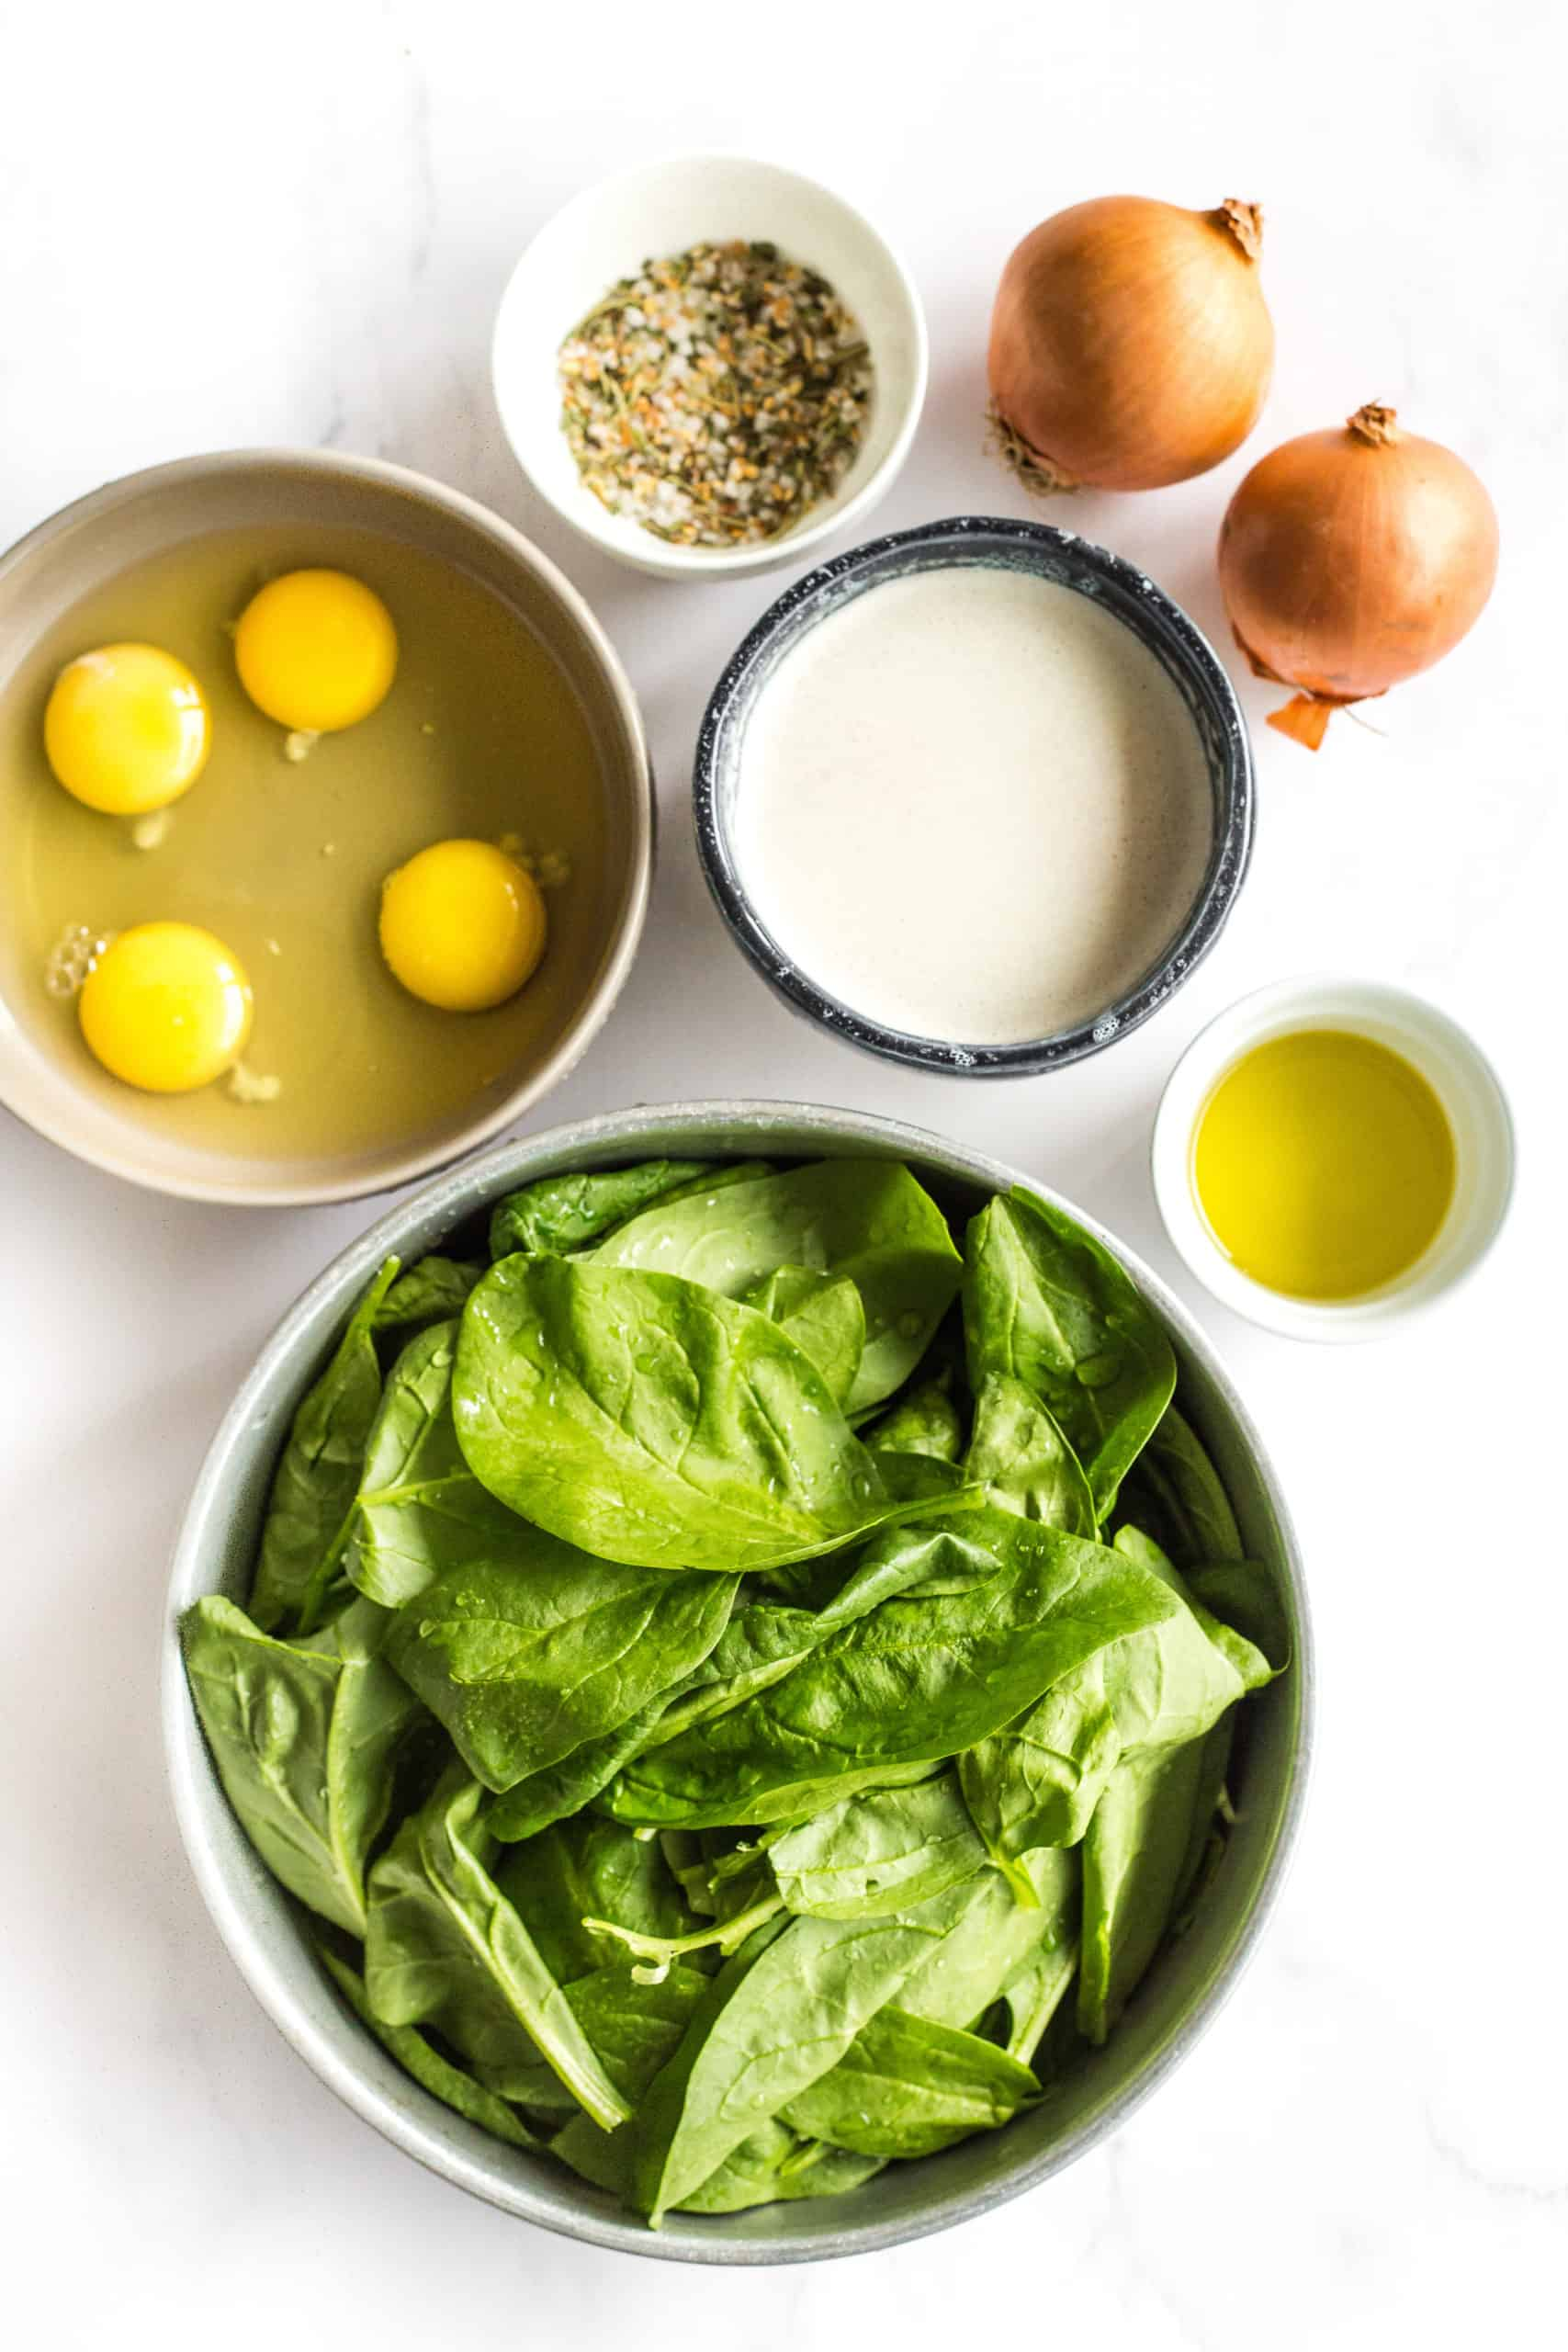 Ingredients for crustless spinach quiche on a marble board